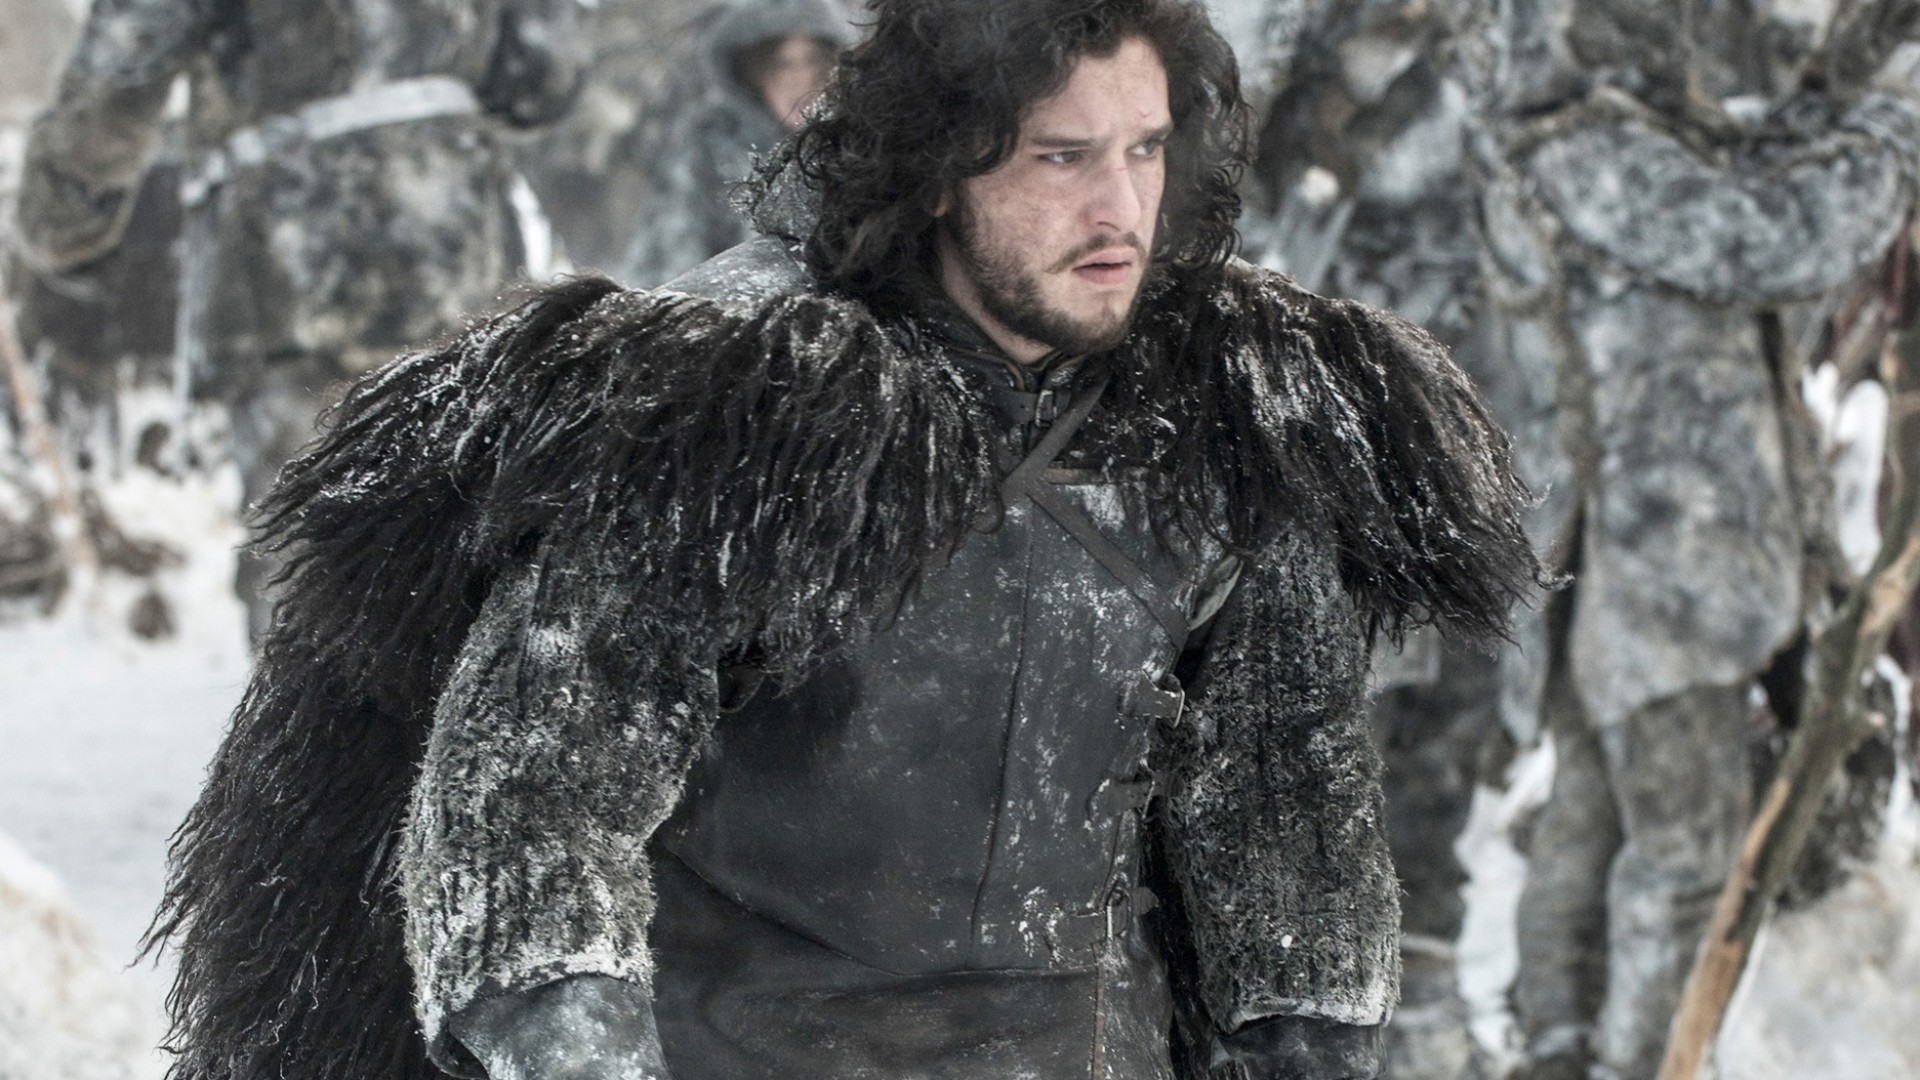 1920x1080 TV Show - Game Of Thrones Jon Snow Kit Harington Wallpaper